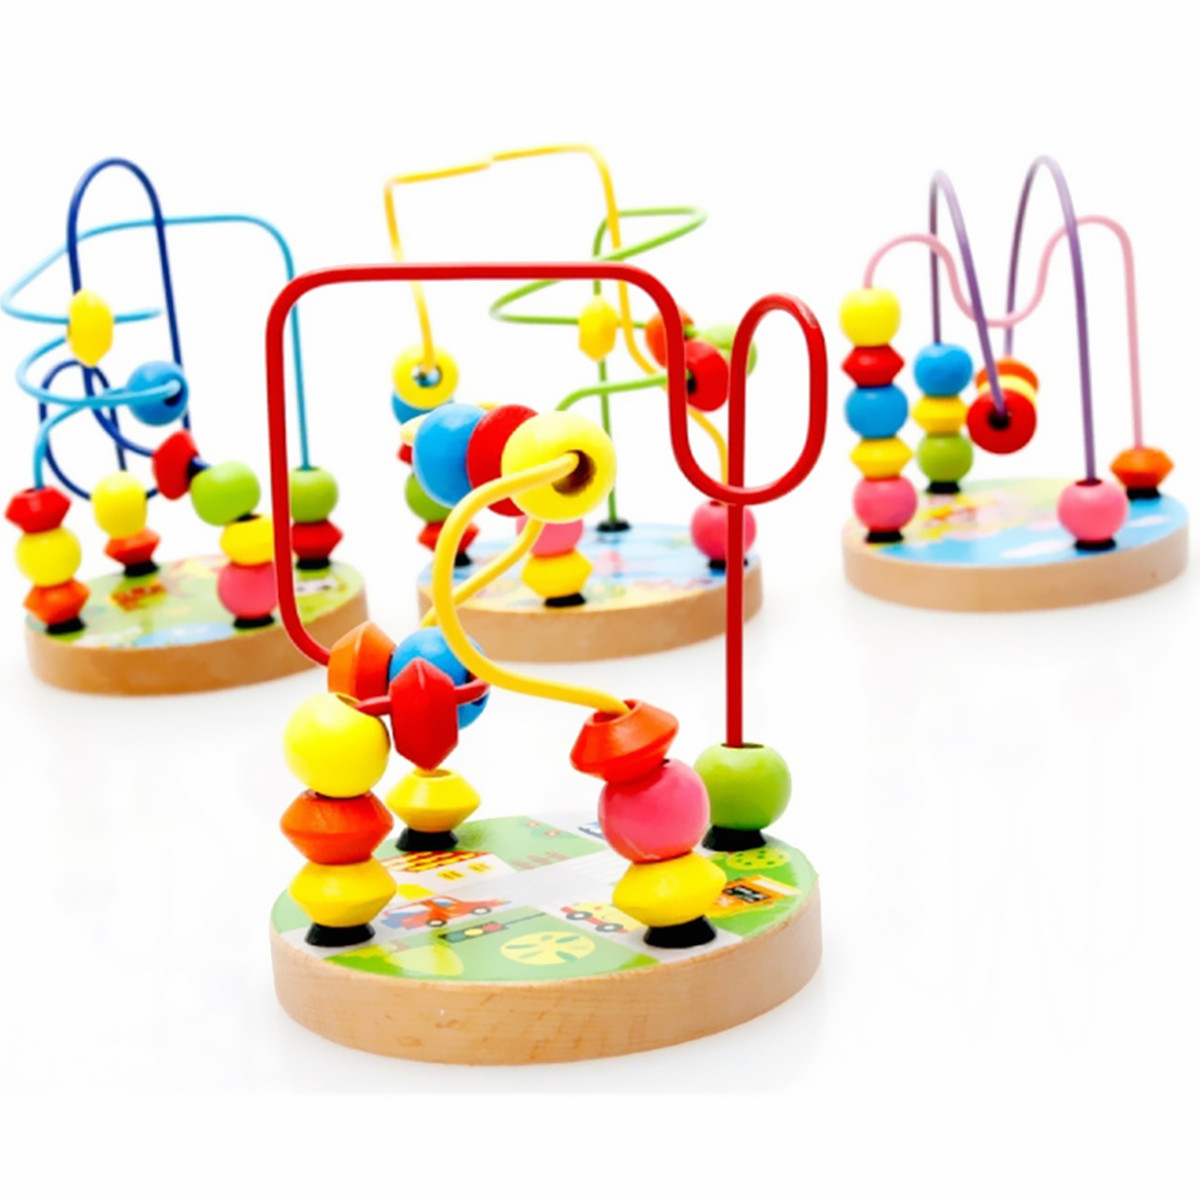 1Pc Colorful Wooden Mini Around Beads Educational Game Toy Wooden Bead Roller Coaster in Assorted Colors for Baby Kids Toddler, for 1-3 Years Children Gift